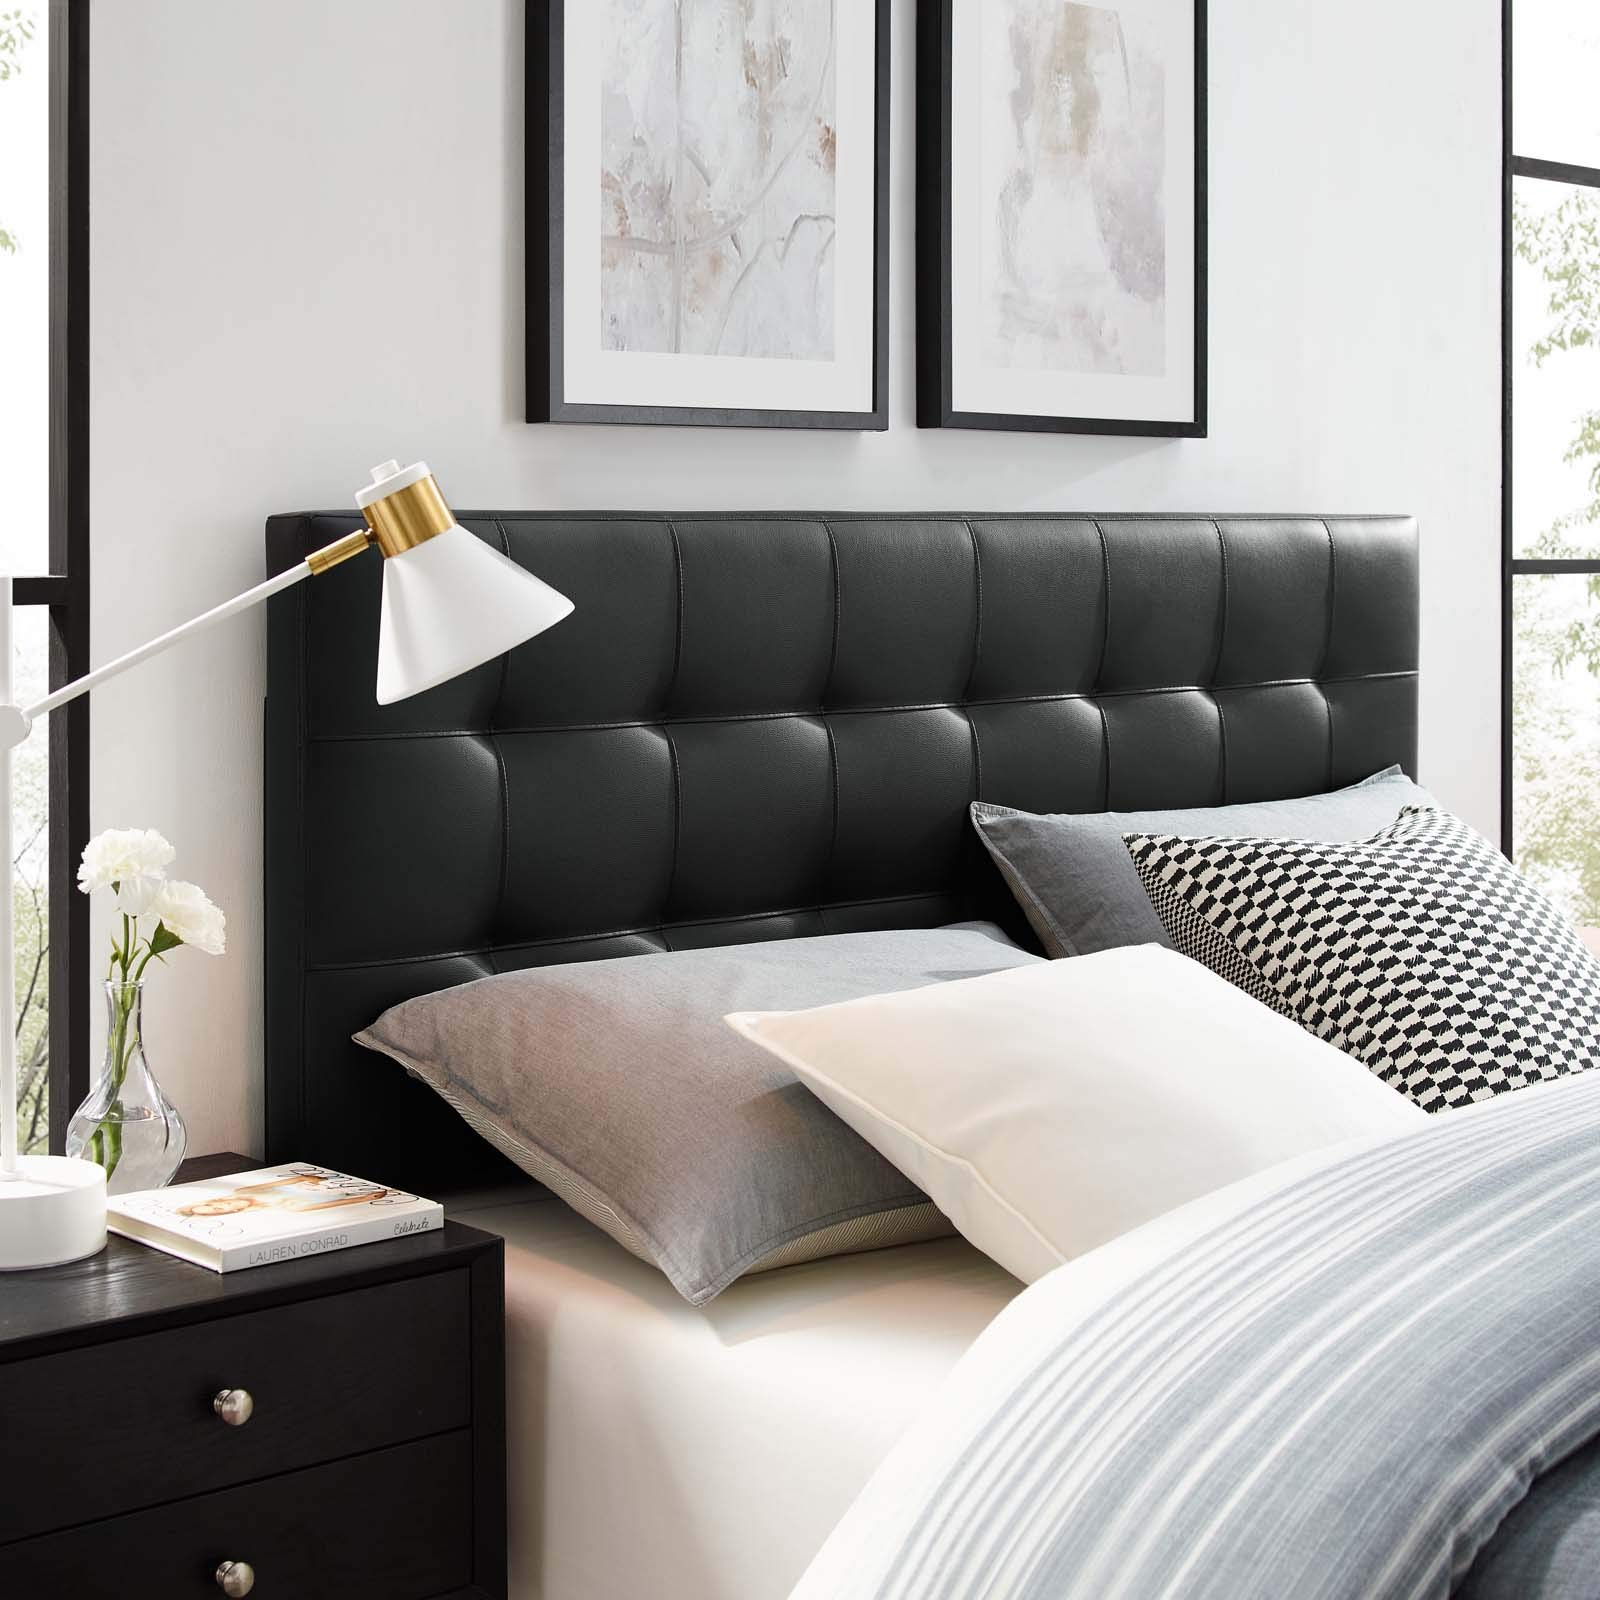 Modway Lily Tufted Faux Leather Upholstered King Headboard in Black by Modway